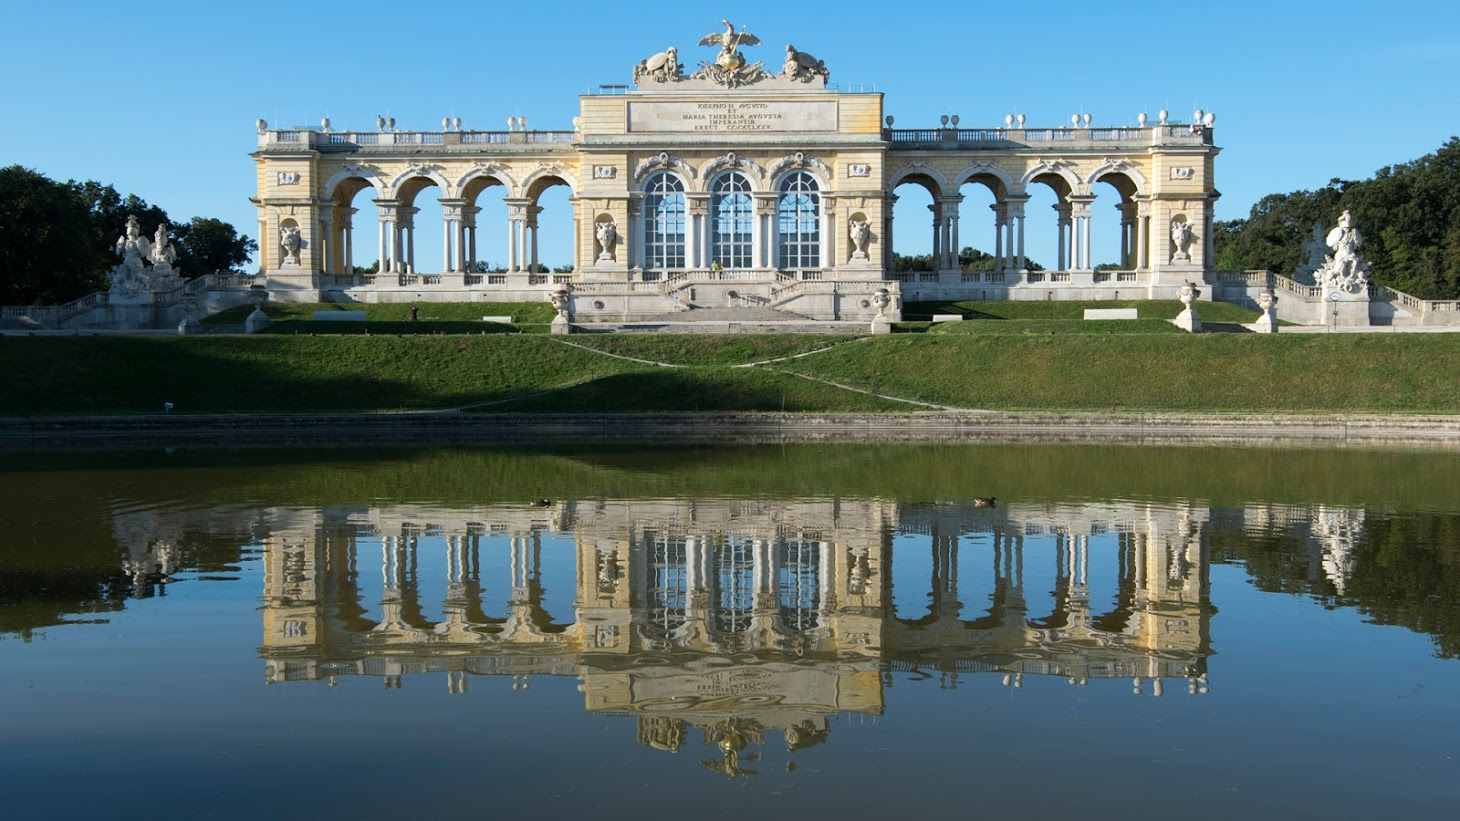 08/15 - gloriette reflections